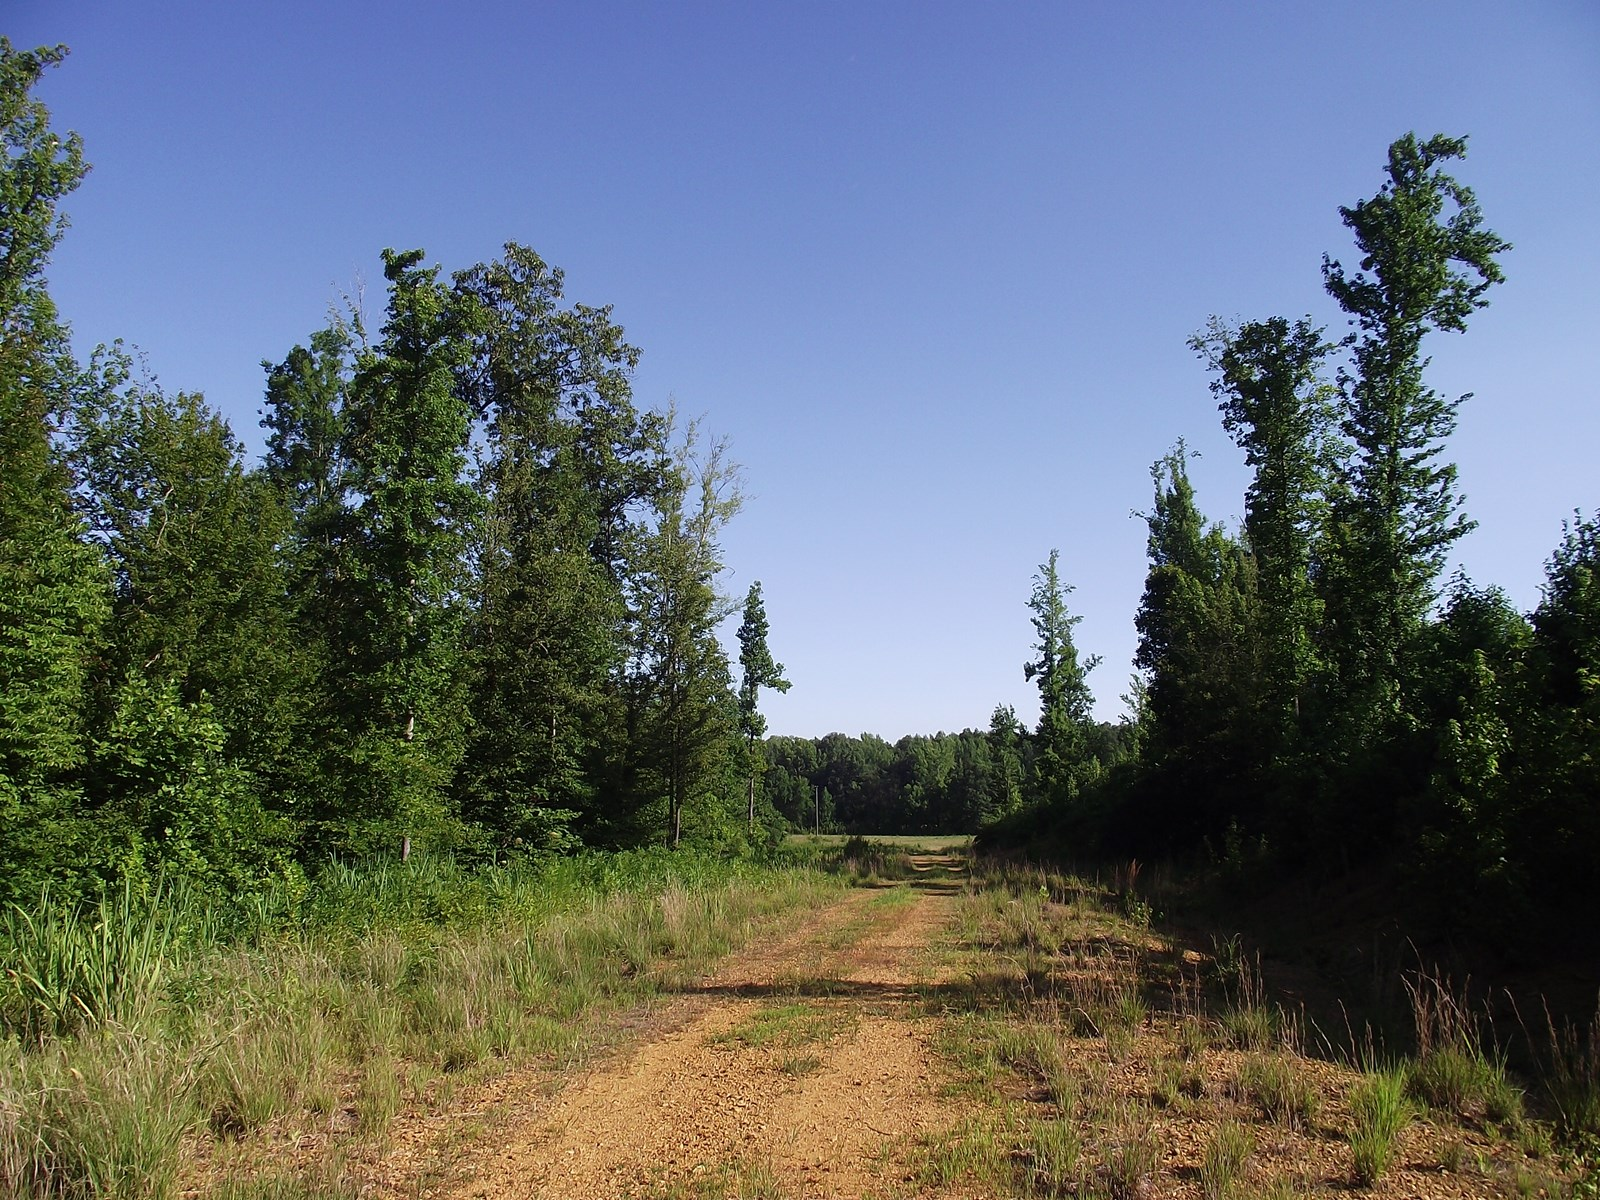 TENNESSEE LAND FOR SALE FOR HUNTING OR DEVELOPMENT